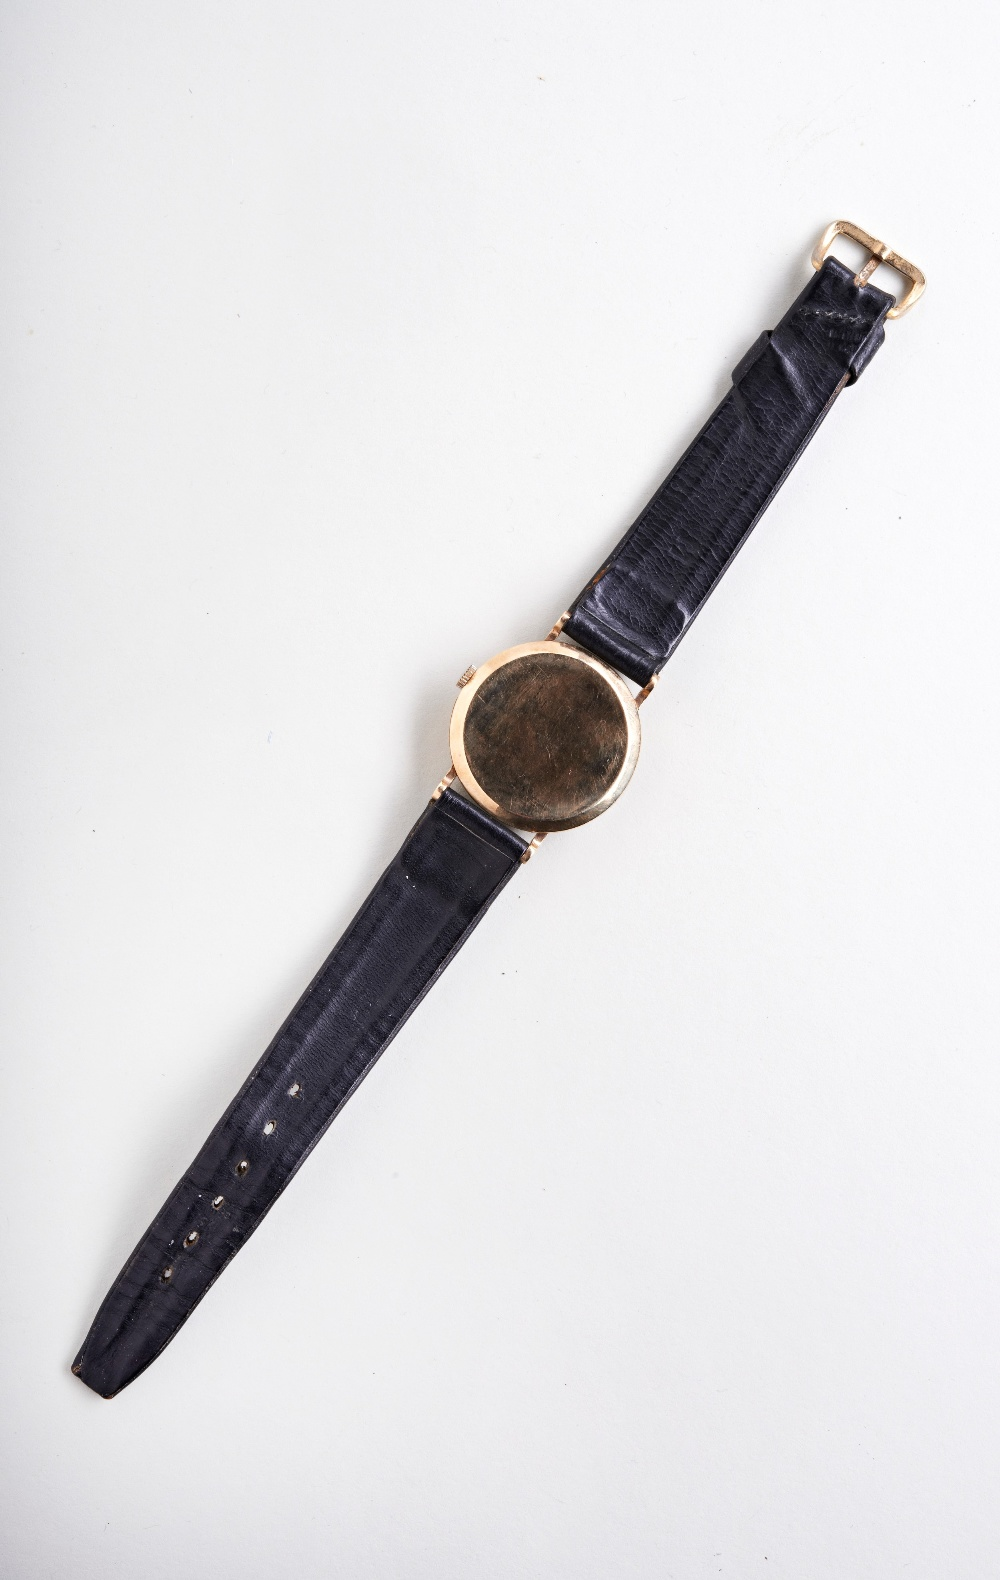 VERTEX 9CT MAN'S DRESS WATCH, c1960, with Arabic numerals and later leather strap. PROVENANCE: The - Image 3 of 3